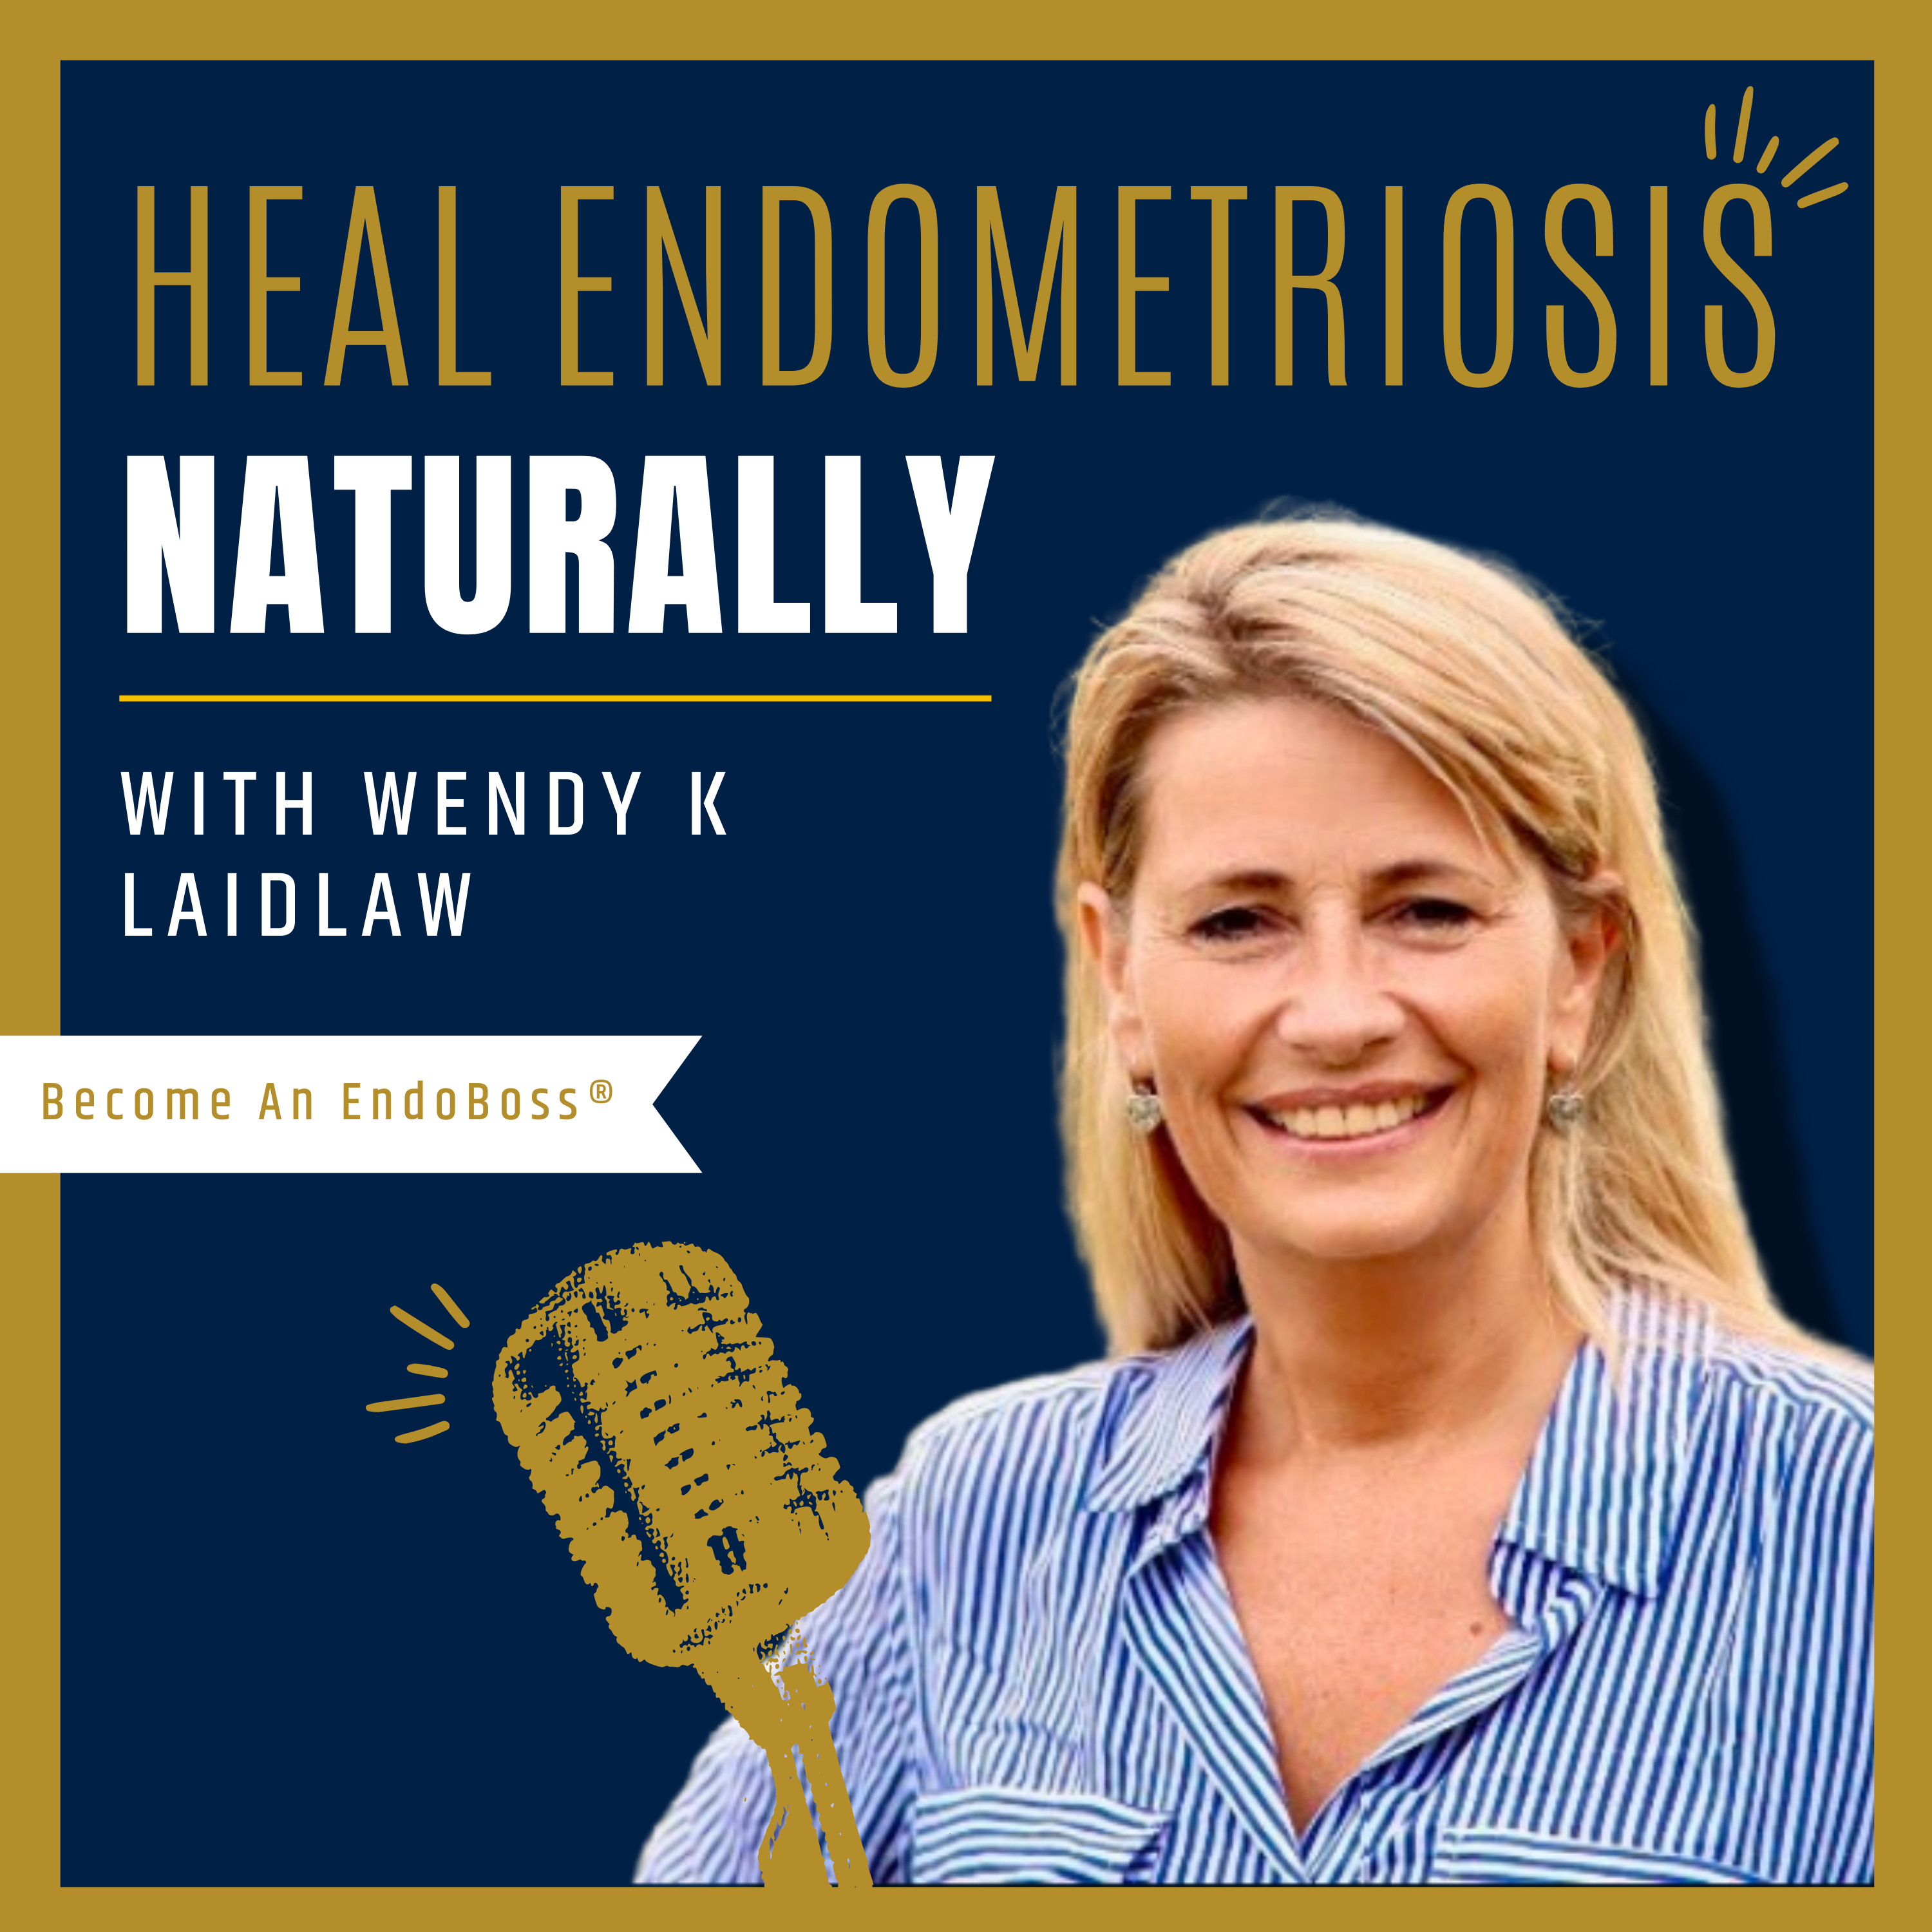 Heal Endometriosis Naturally With Wendy K Laidlaw show art